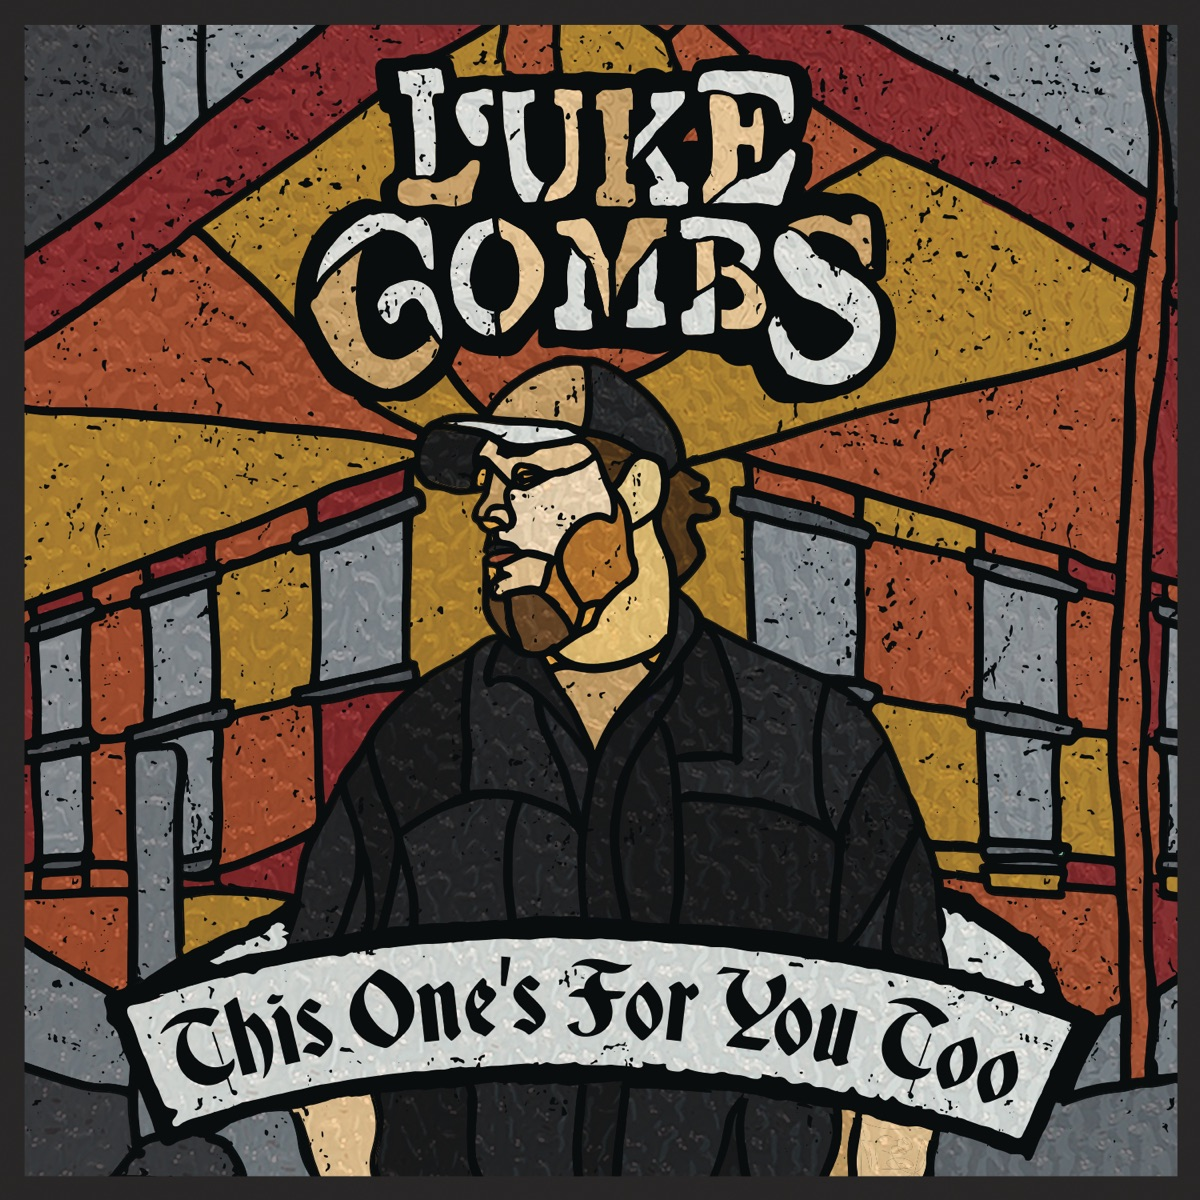 This One's for You Too Deluxe Edition Luke Combs CD cover